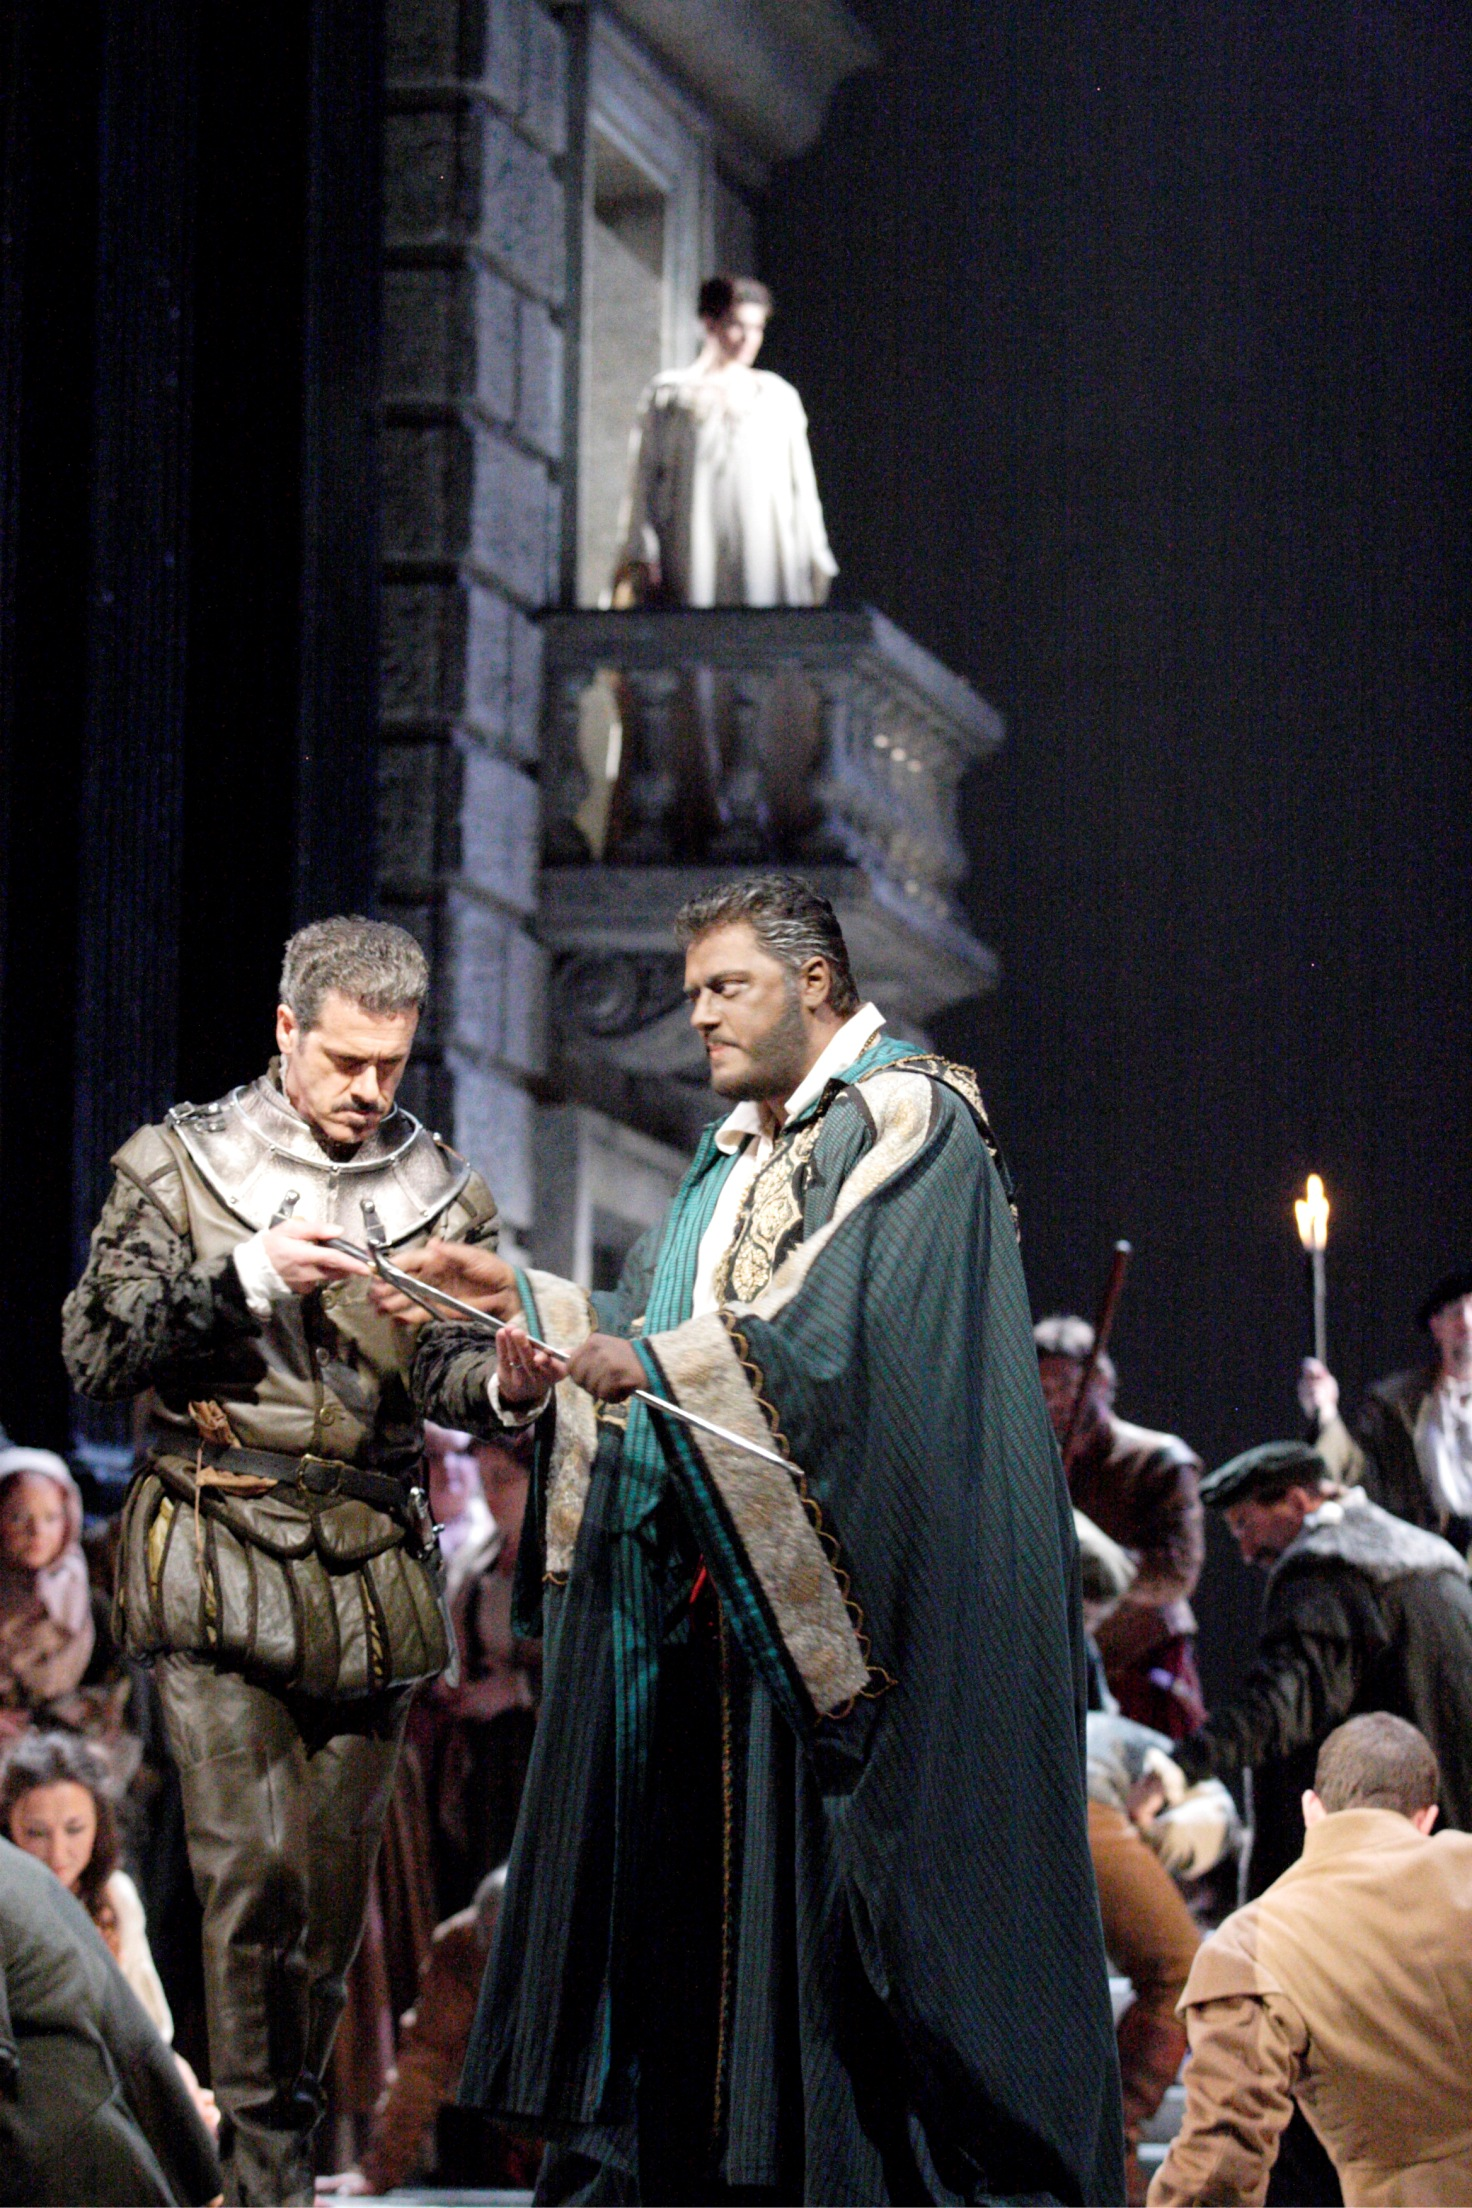 Lucio Gallo as Iago and Aleksandrs Antonenko as Otello in the Royal Opera production of Otello